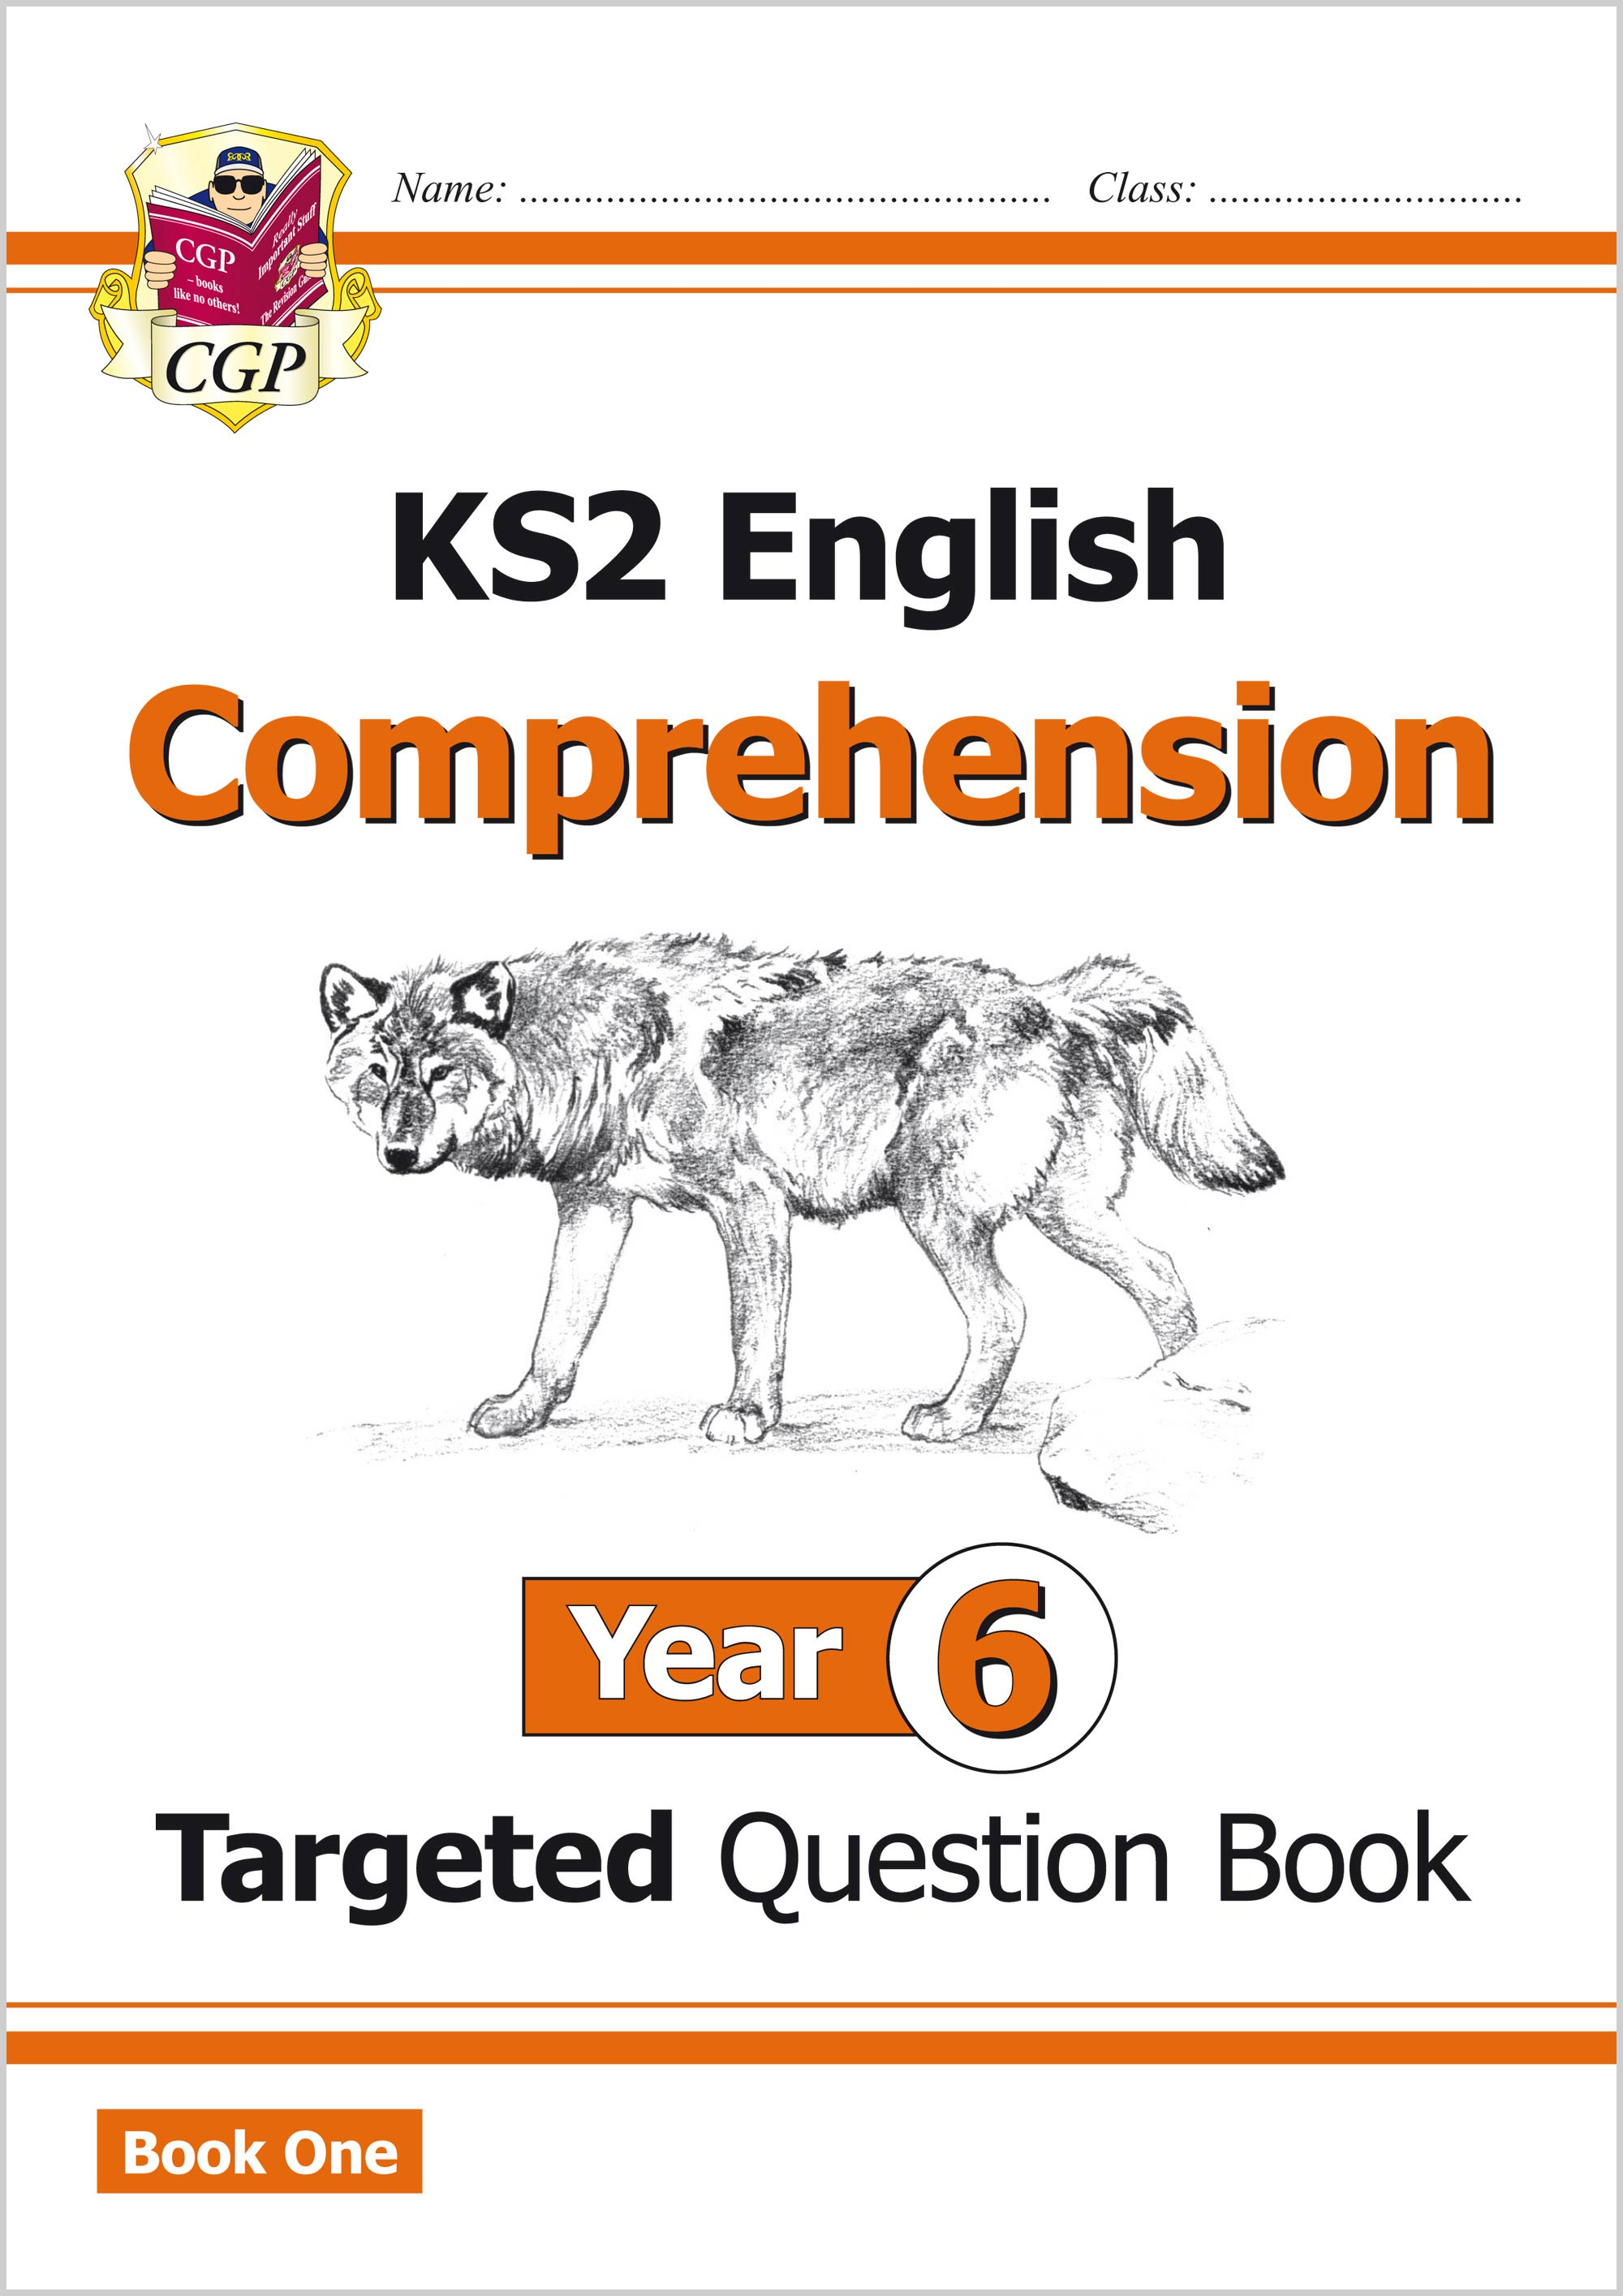 E6CW21 - New KS2 English Targeted Question Book: Year 6 Comprehension - Book 1